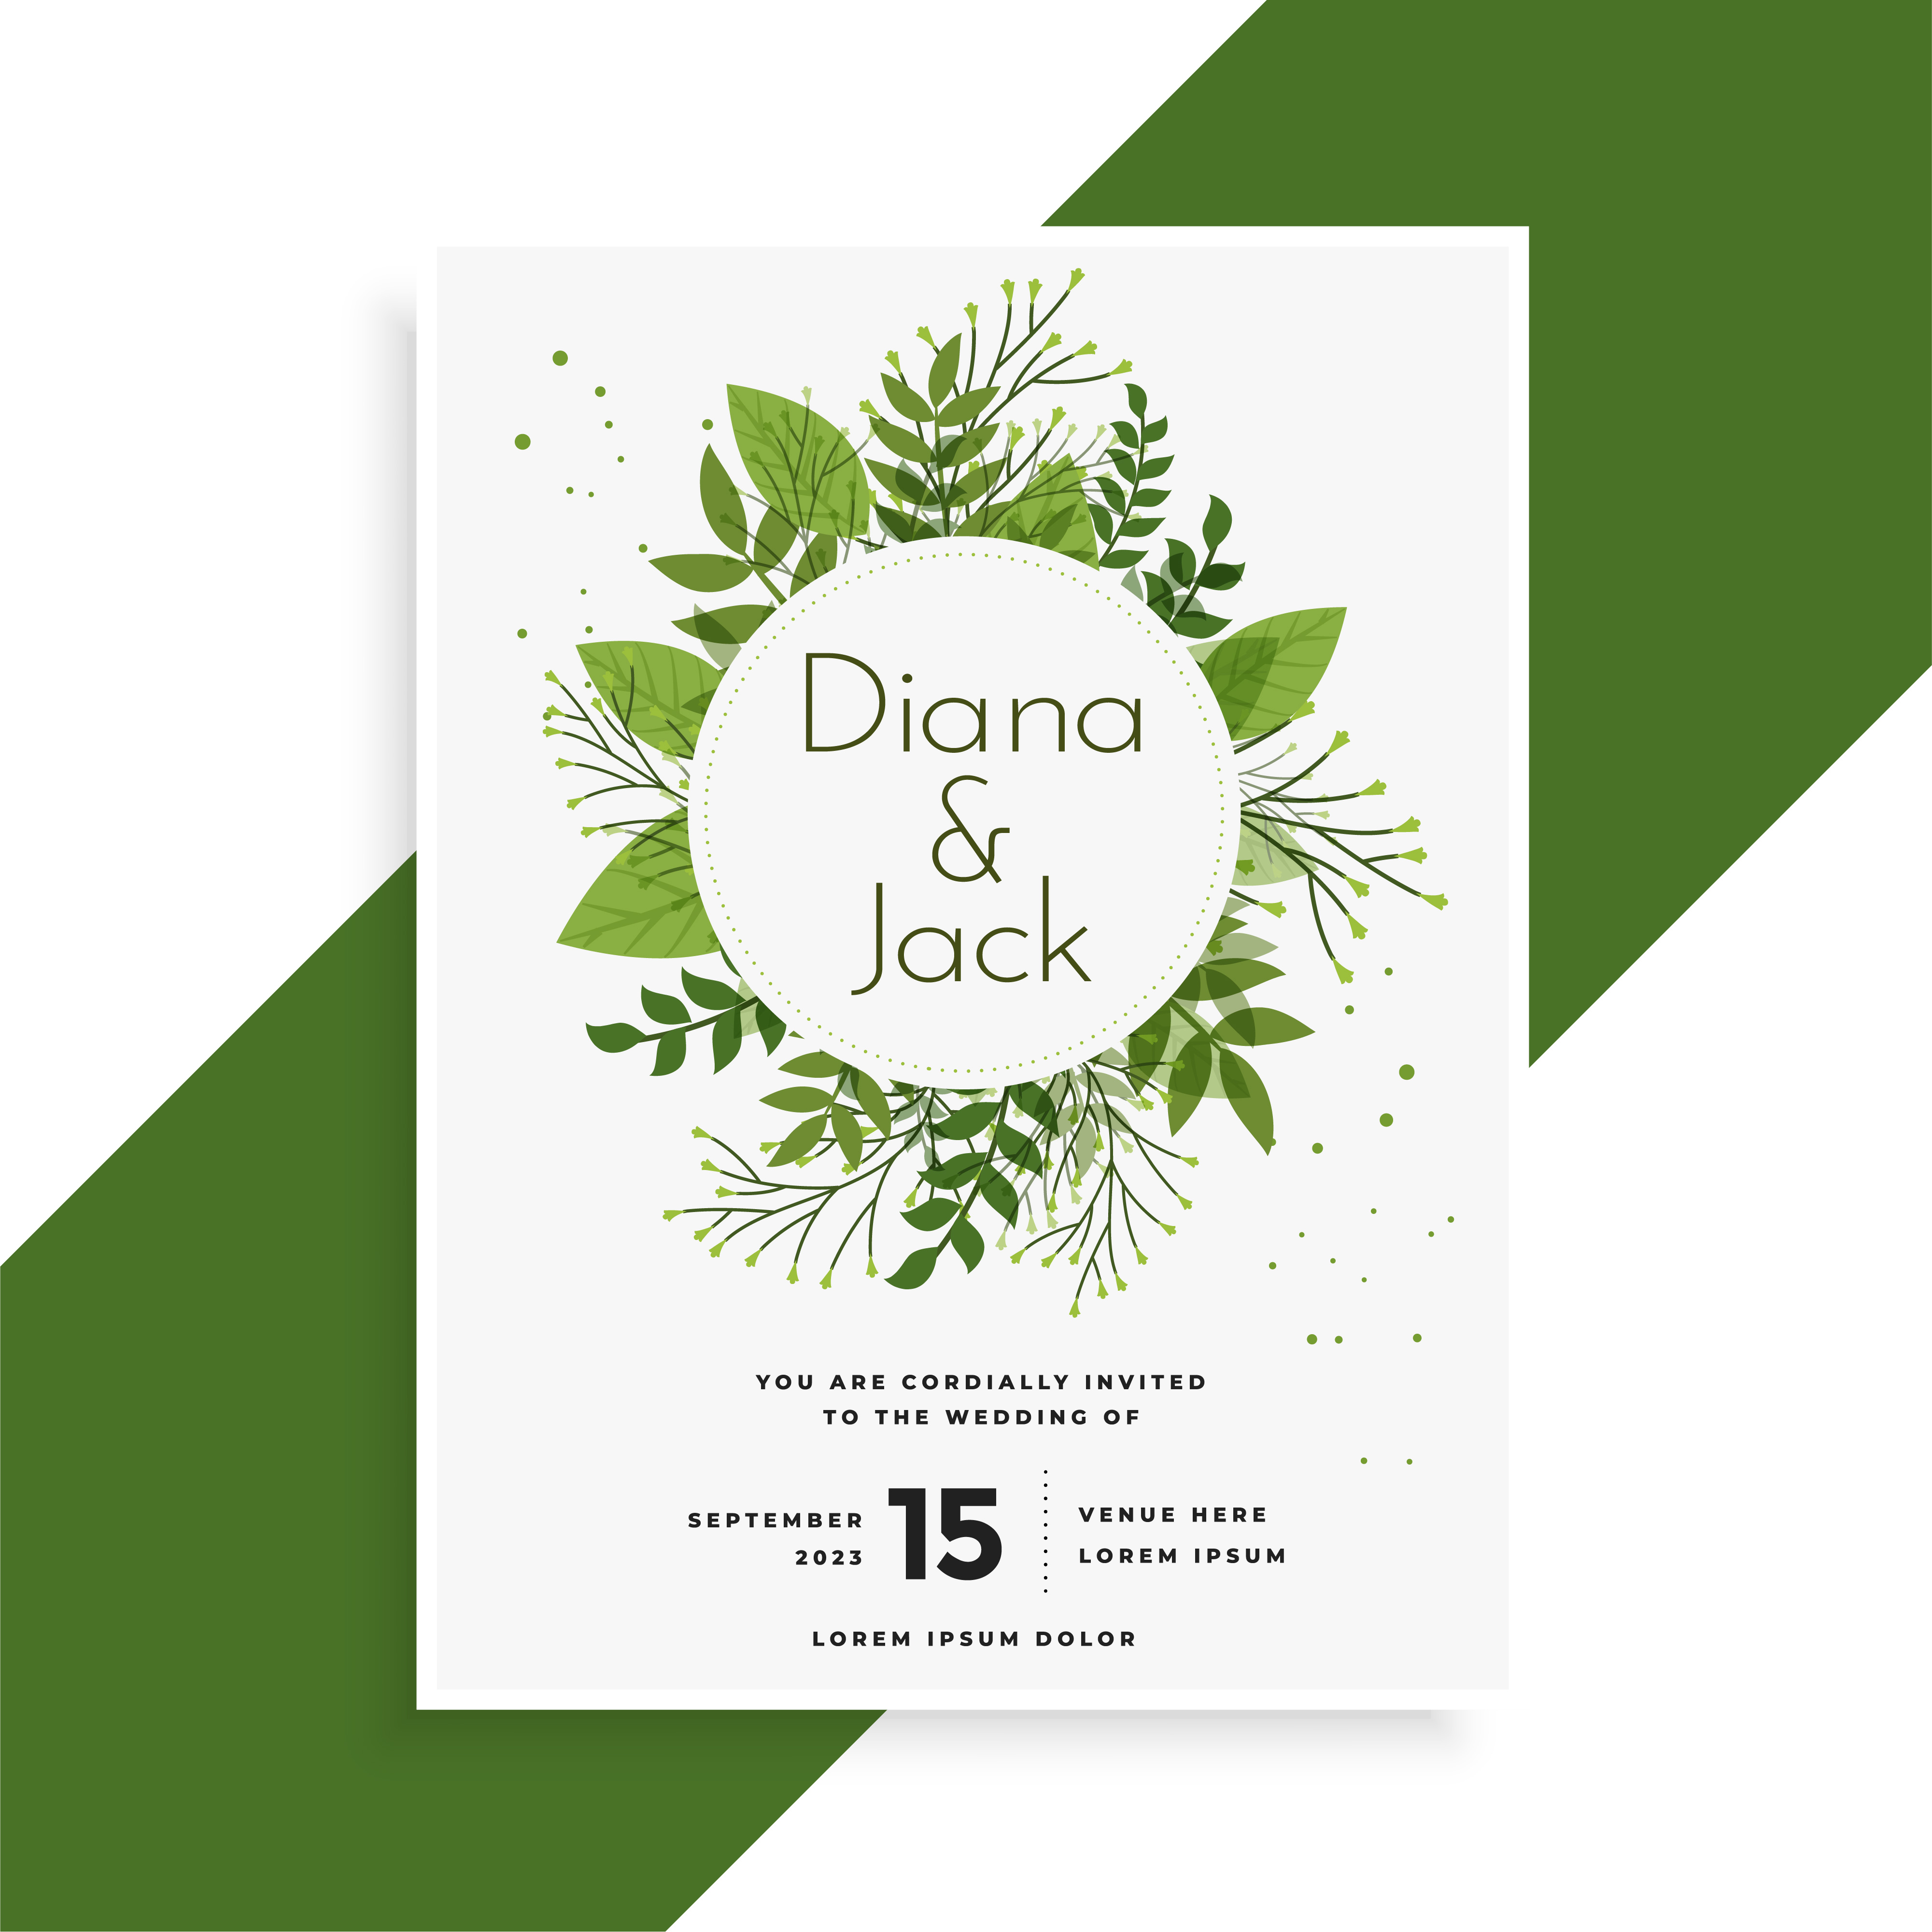 Green Leaves Wedding Invitation Card Design Free Vector Art Stock Graphics Images